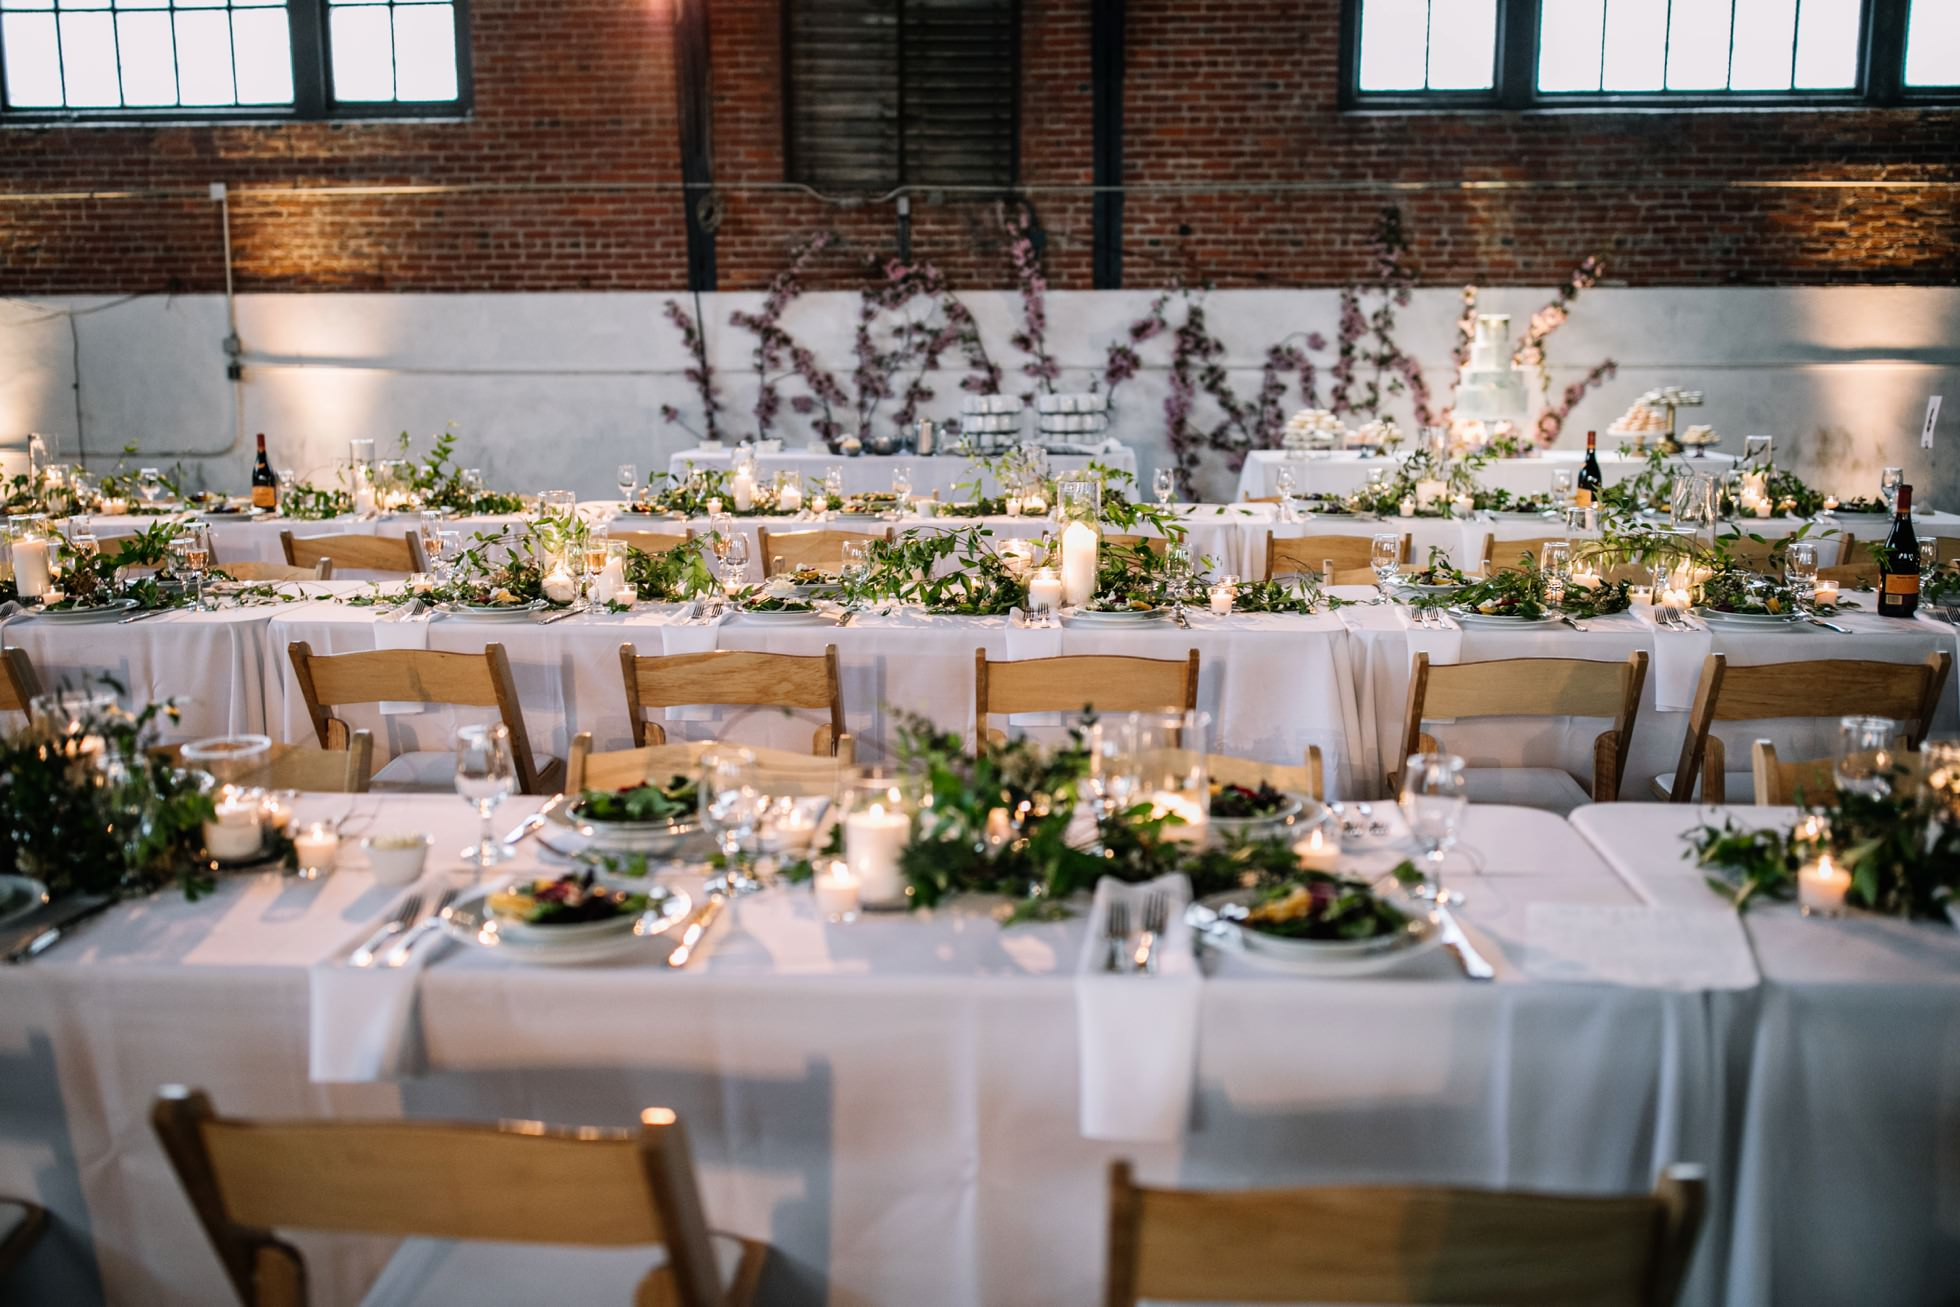 Best Unique PA NY NJ Wedding Venues - 23rd St Armory Industrial Warehouse